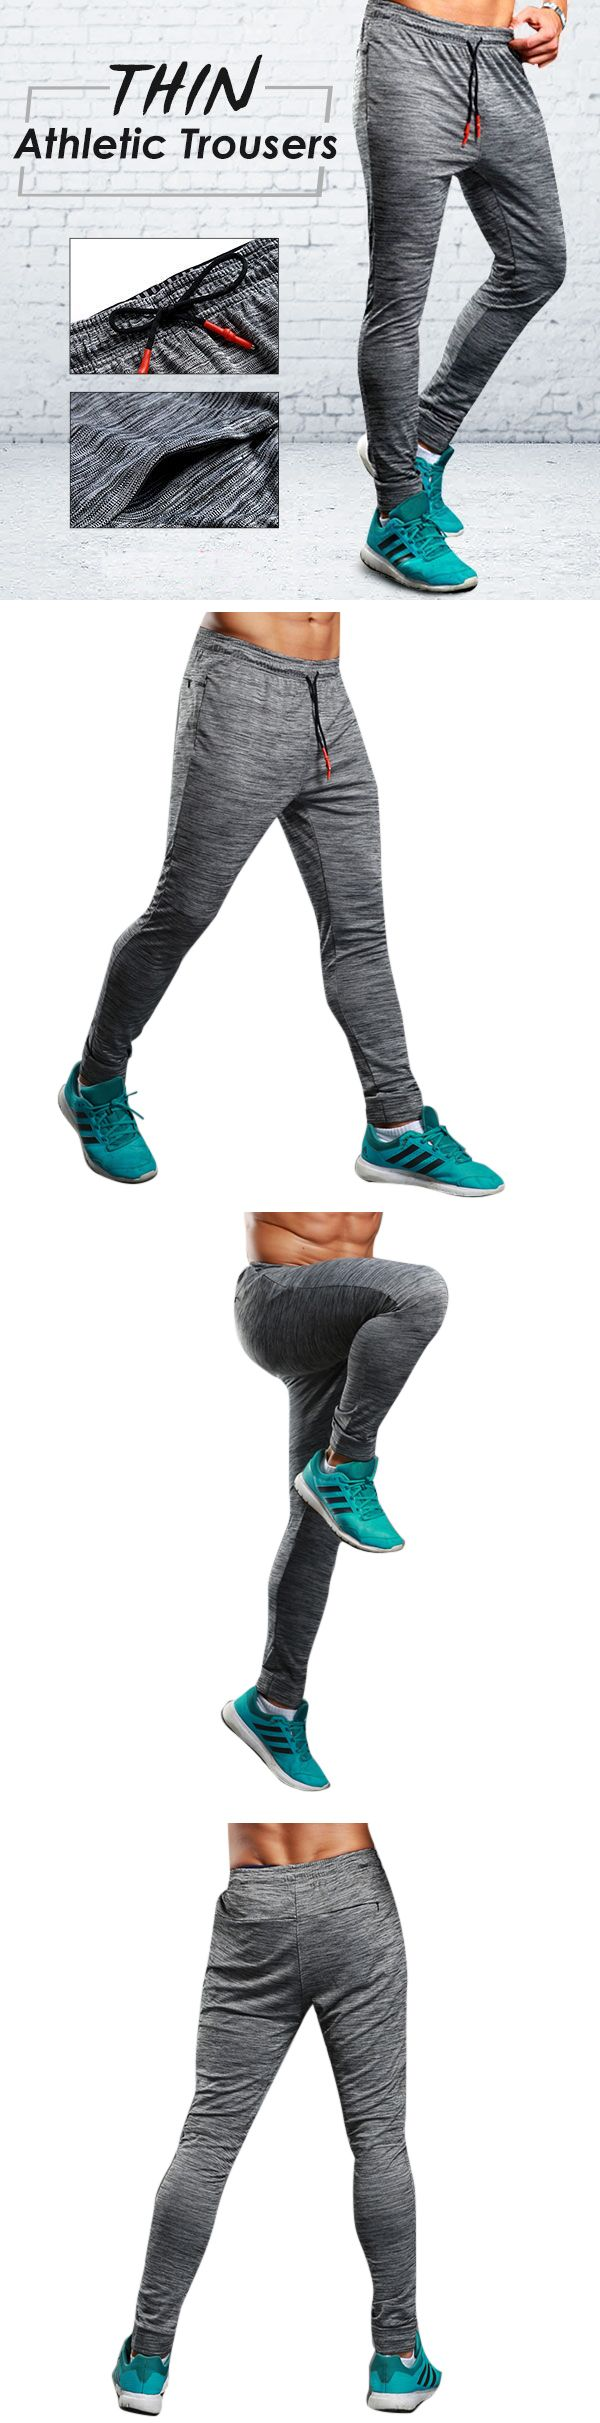 Gym Outfit: Mens Running Trousers: Bodybuilding/ Joggers /Elastic /Pencil Thin /Breathable